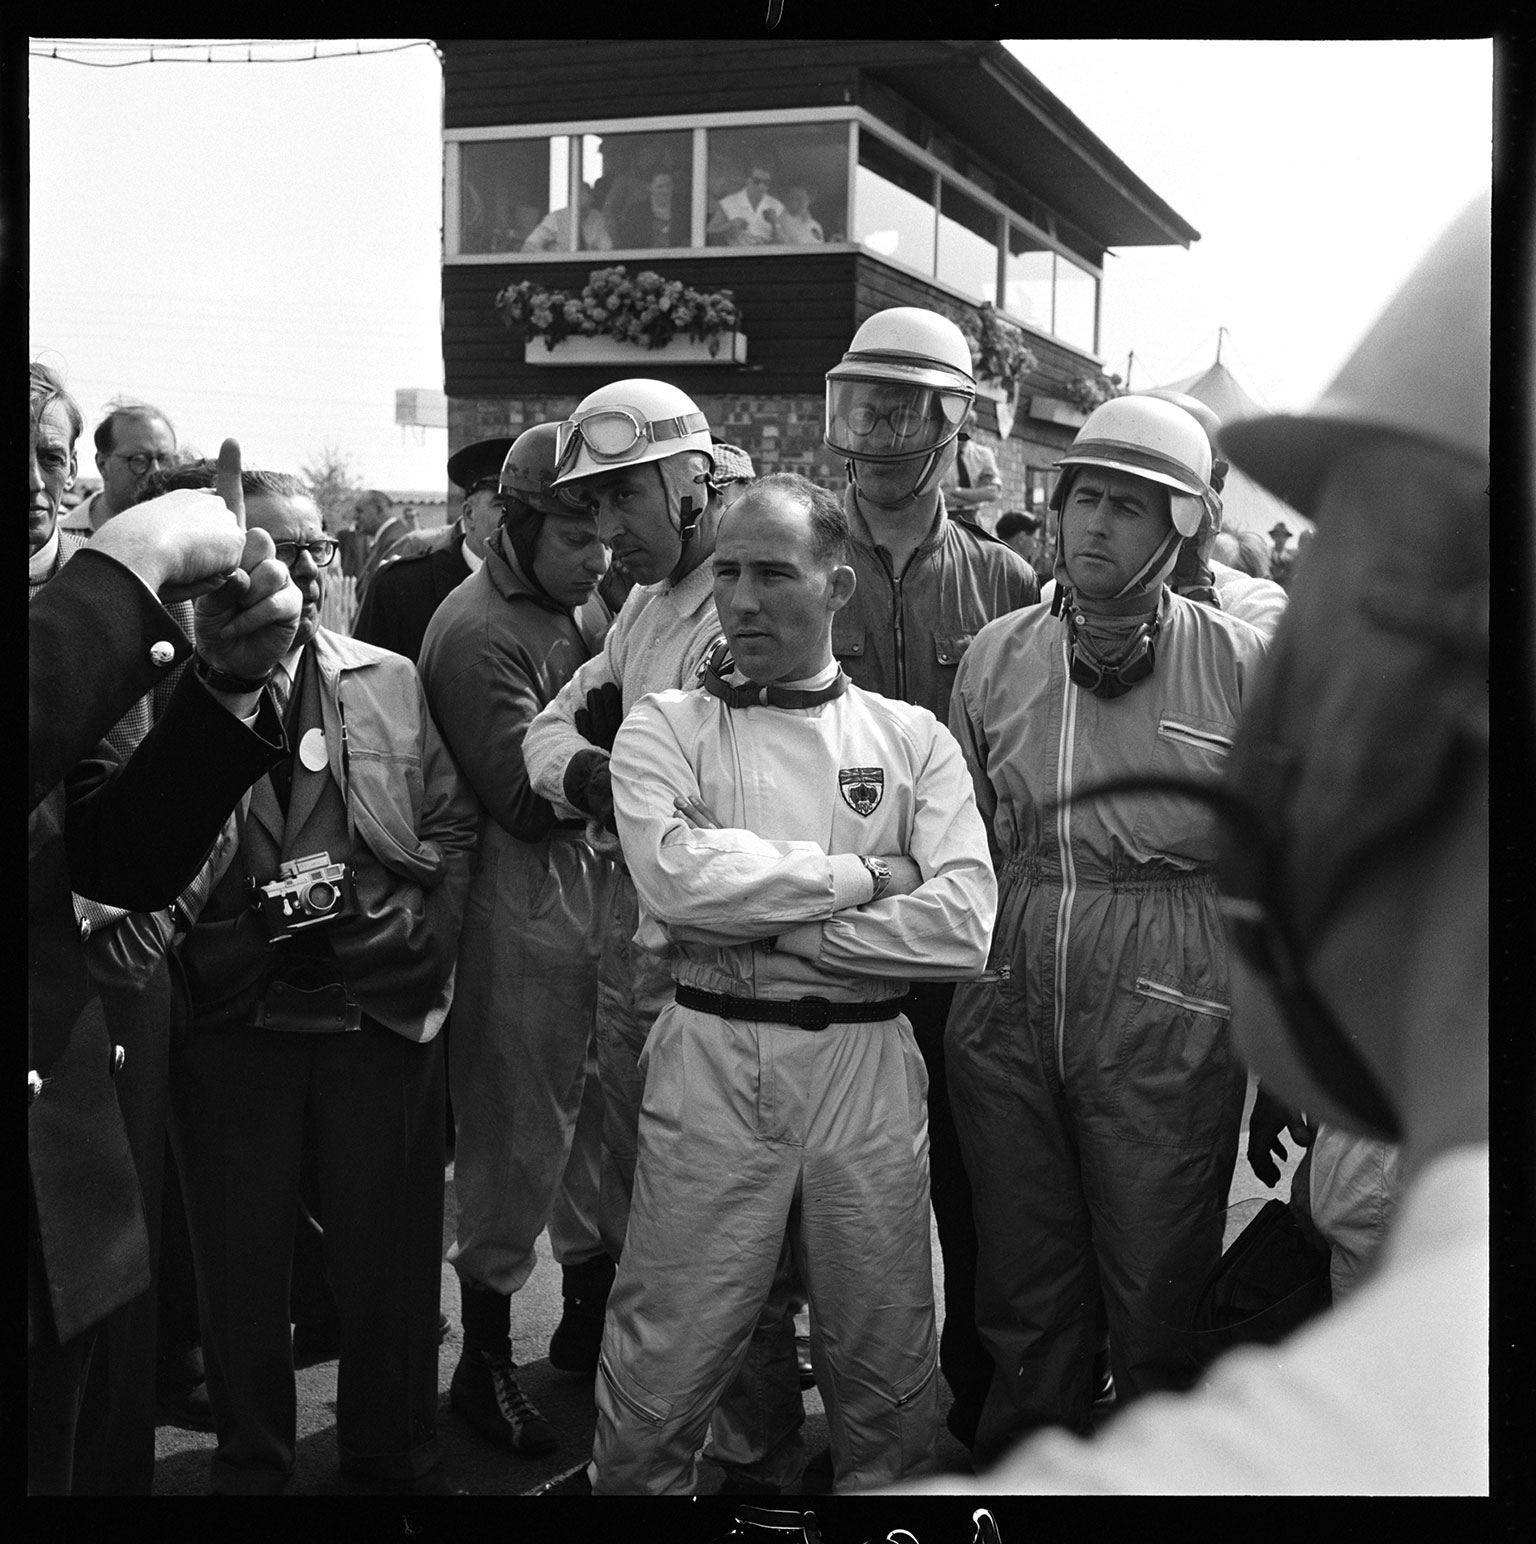 Stirling Moss with Jack Brabham at the 1958 Silverstone International Trophy